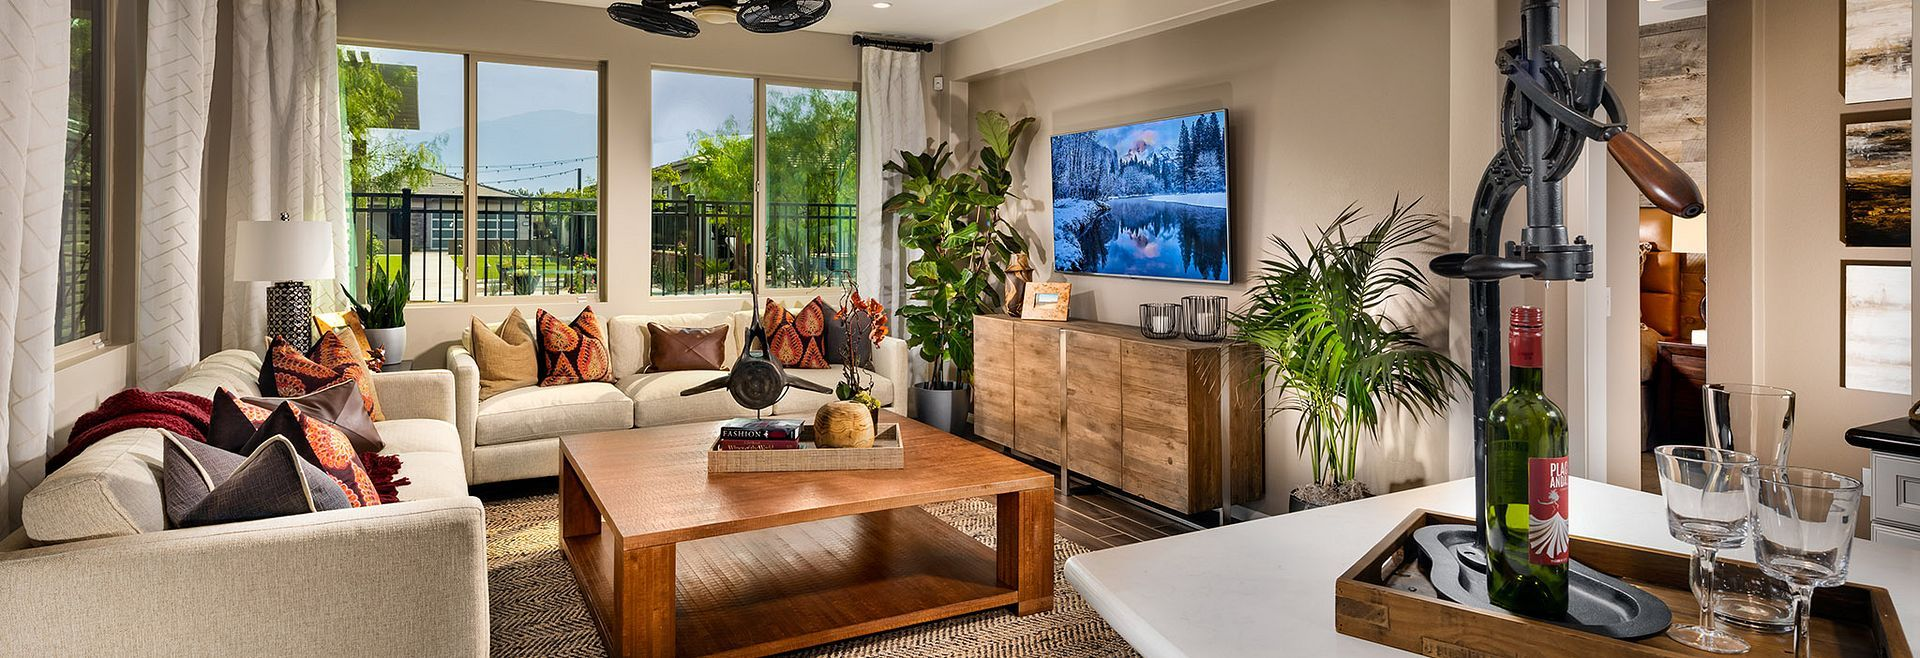 Living Area featured in the Muros By Shea Homes - Trilogy in Phoenix-Mesa, AZ